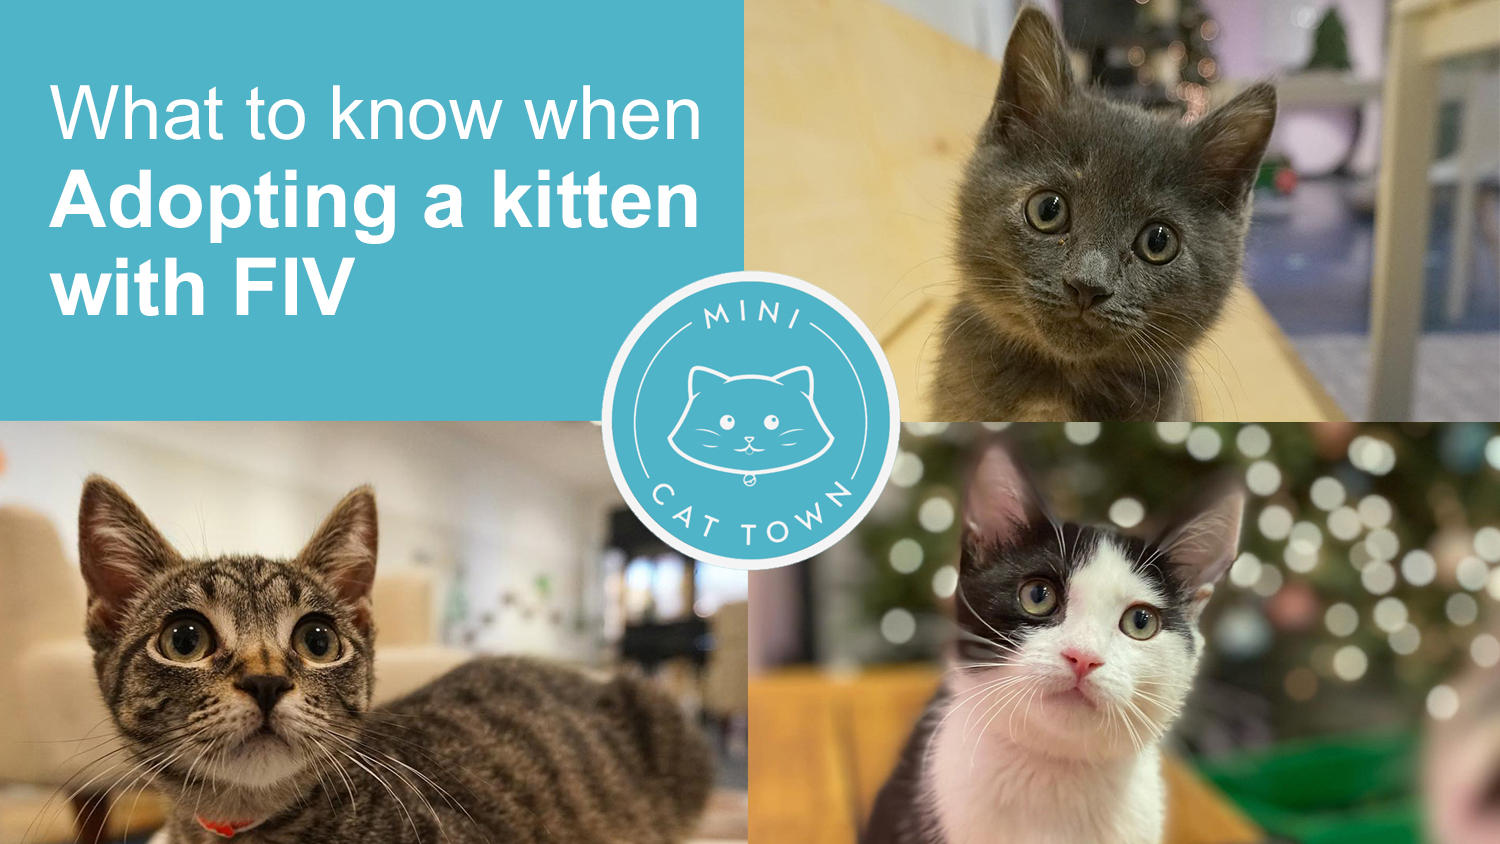 Featured image for article on What to know when Adopting a Kitten with FIV